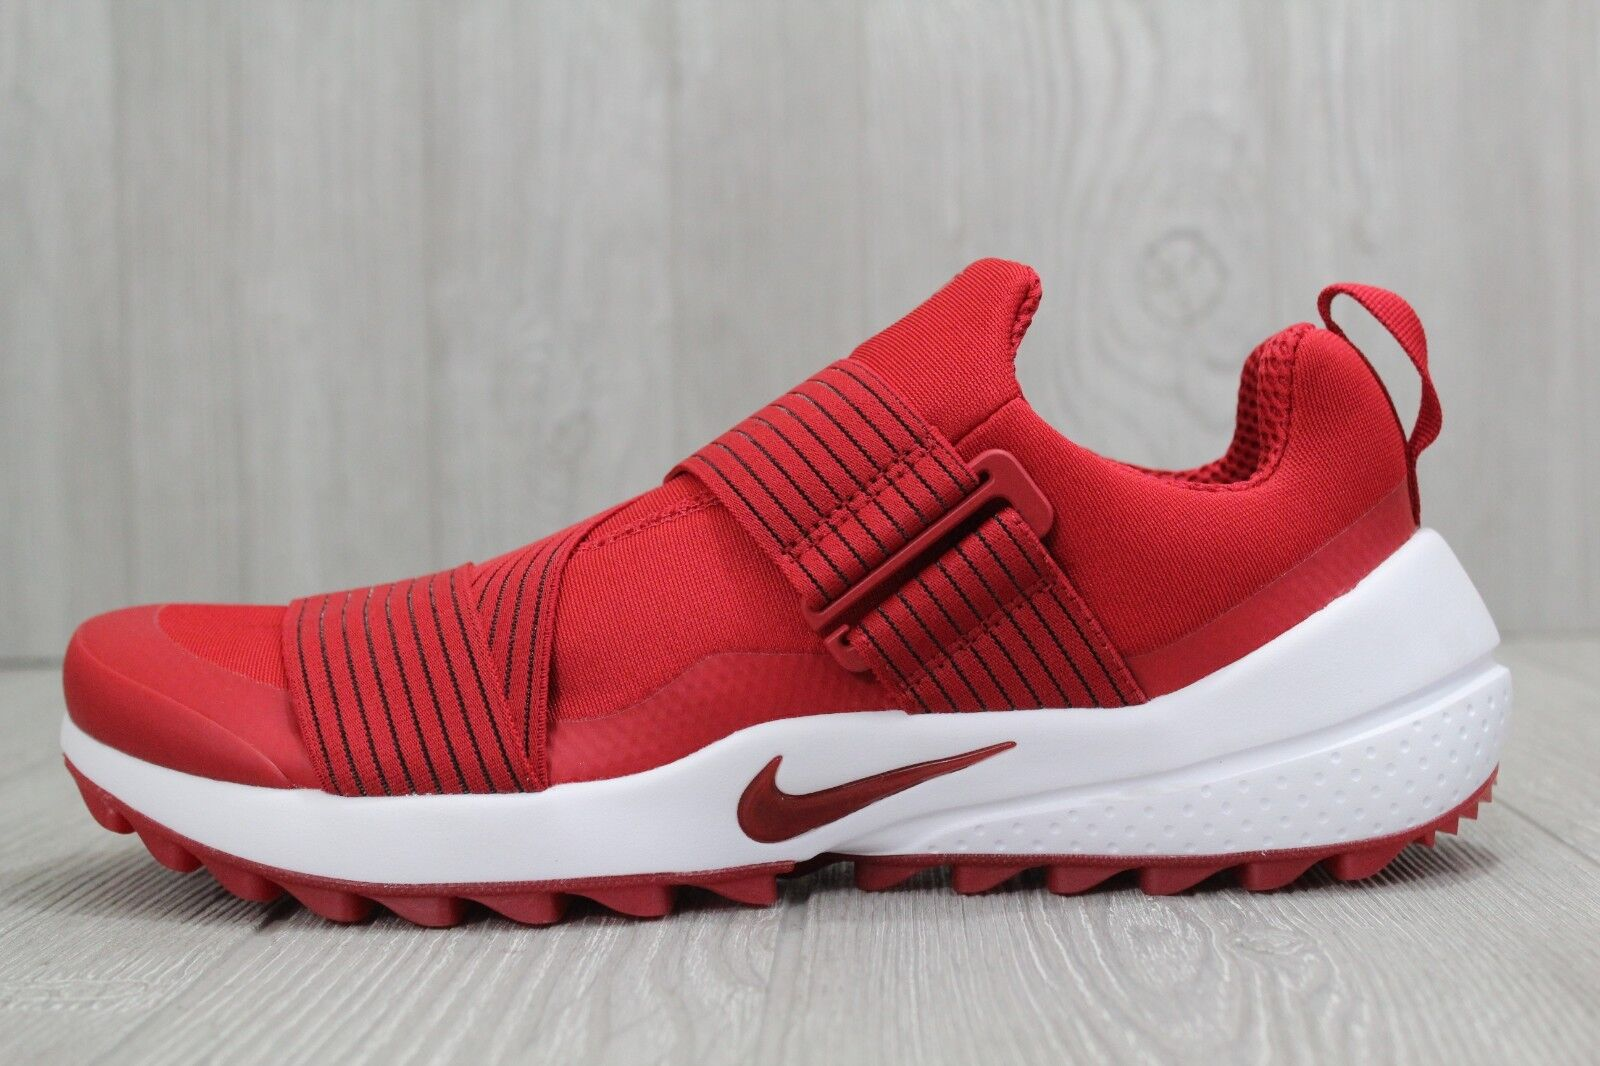 30 Mens Nike Air Zoom Gimme Spikeless Golf Shoes Red White Shoes 9-11 849955-600 The most popular shoes for men and women